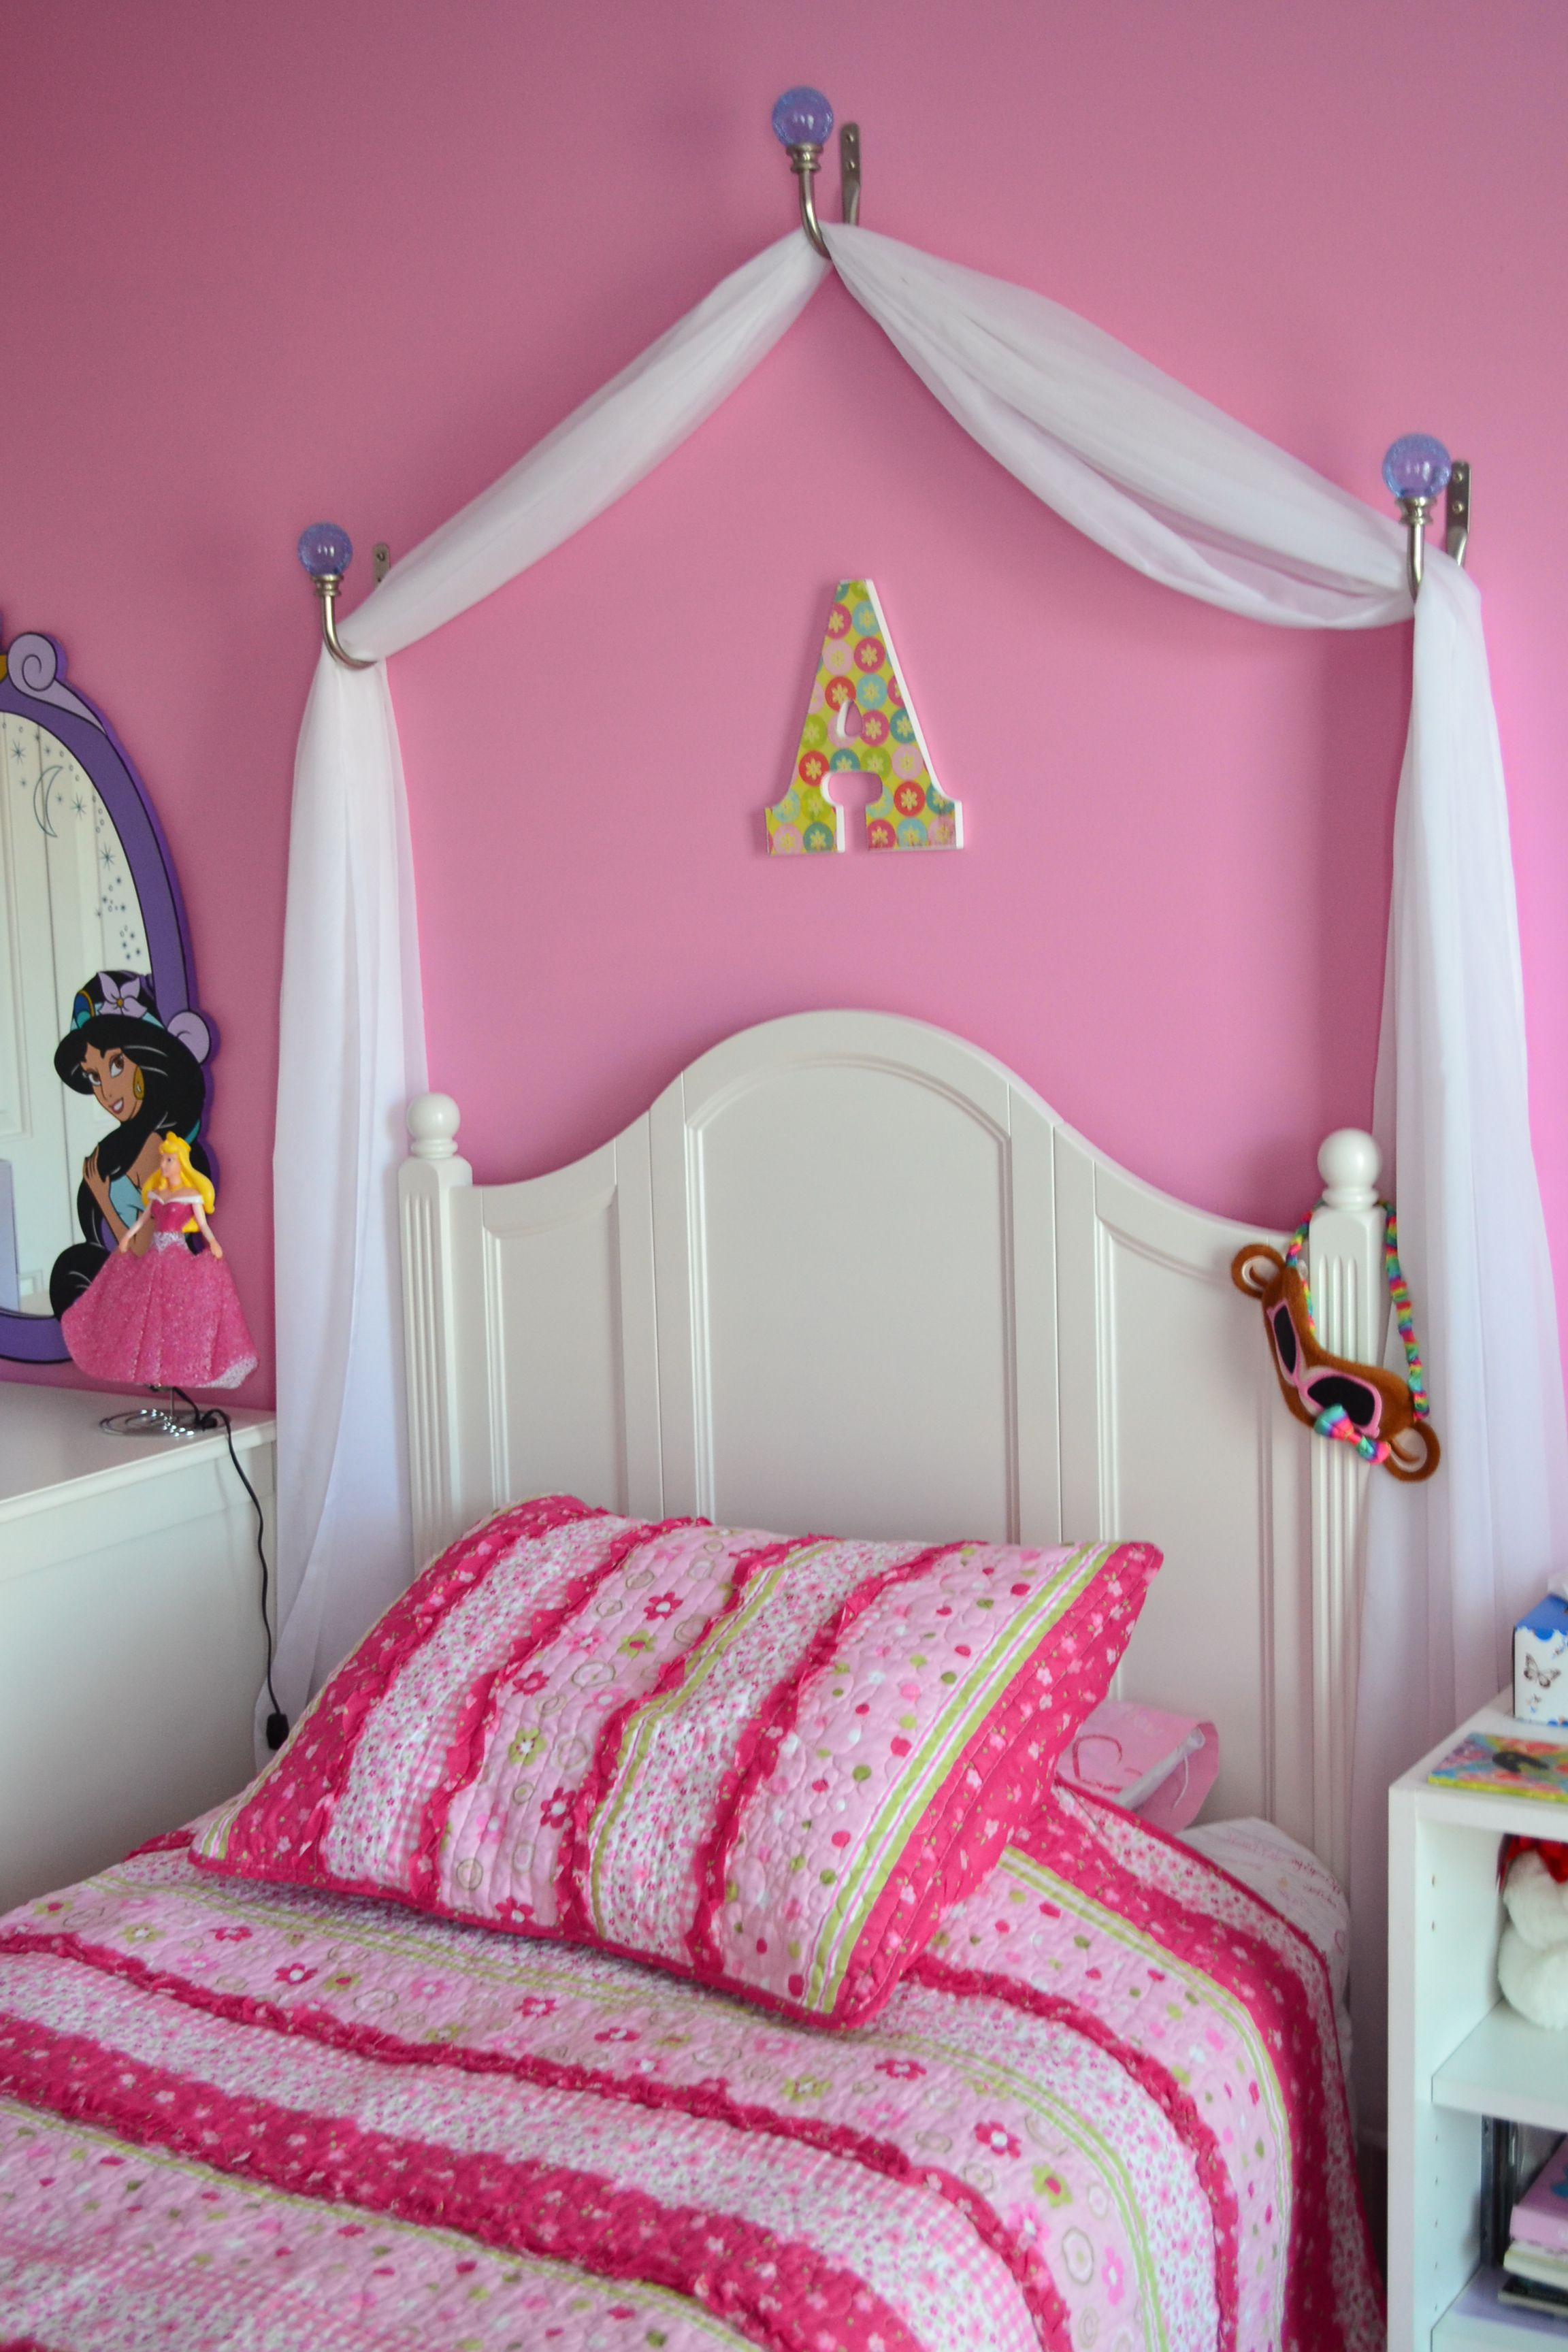 Creating a disney princess room on a budget homemade Toddler girl bedroom ideas on a budget